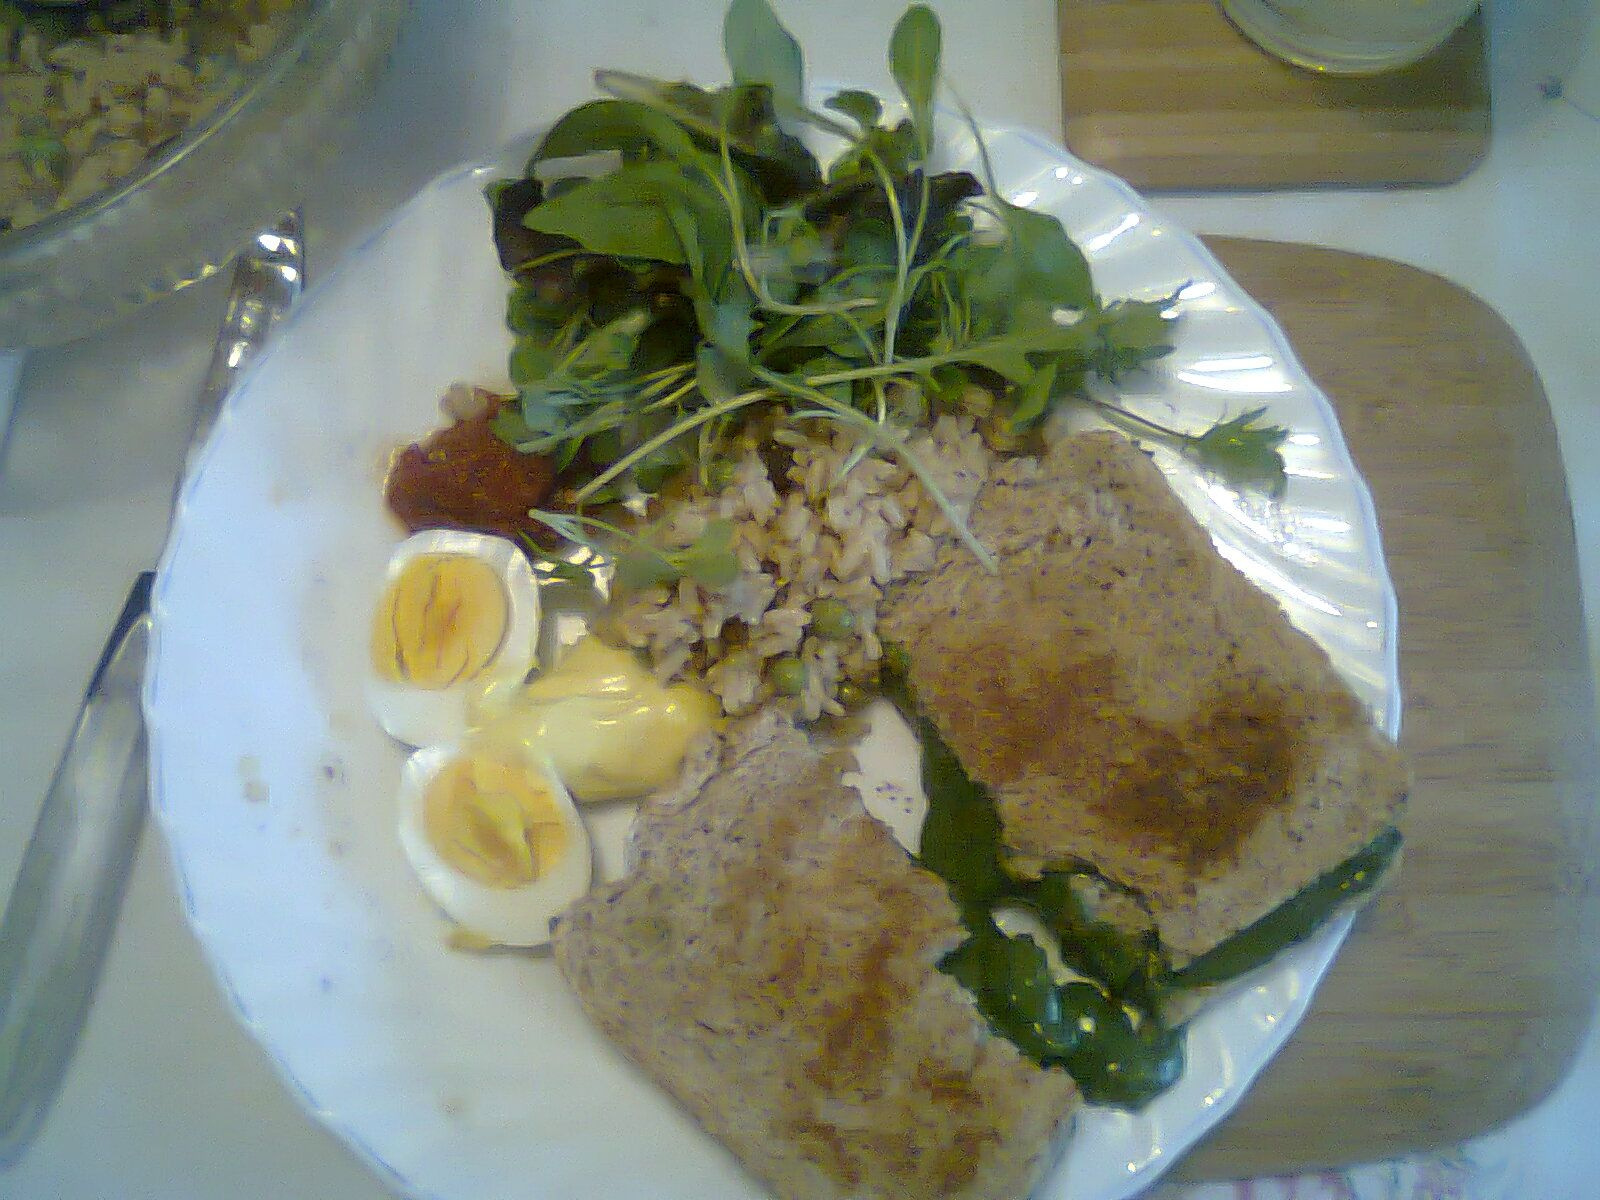 My copycat version of St Martin's Tearooms Spinach and Cheese Toastie - homemade bread, homemade mayo, our hard boiled eggs, salad, homemade salsa, homemade brown rice salad. DELISH!